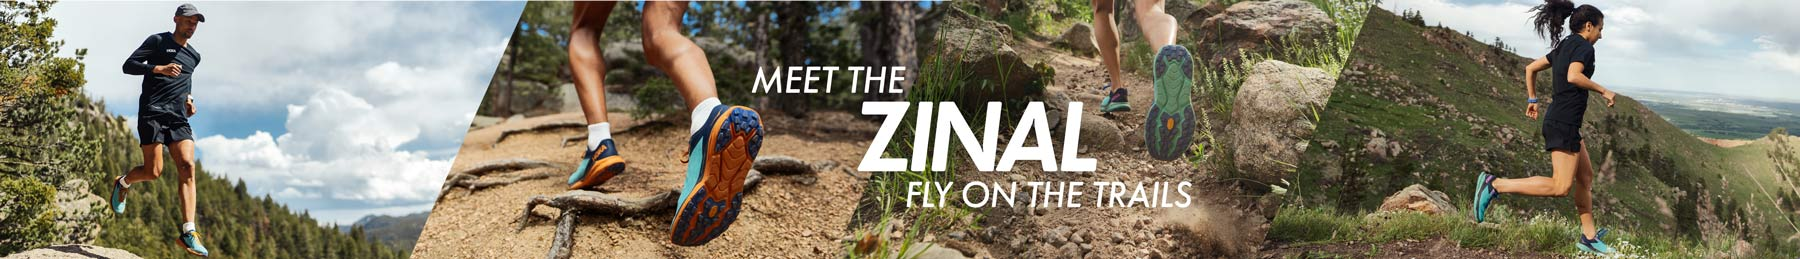 Meet the Zinal.  Fly on the Trails.